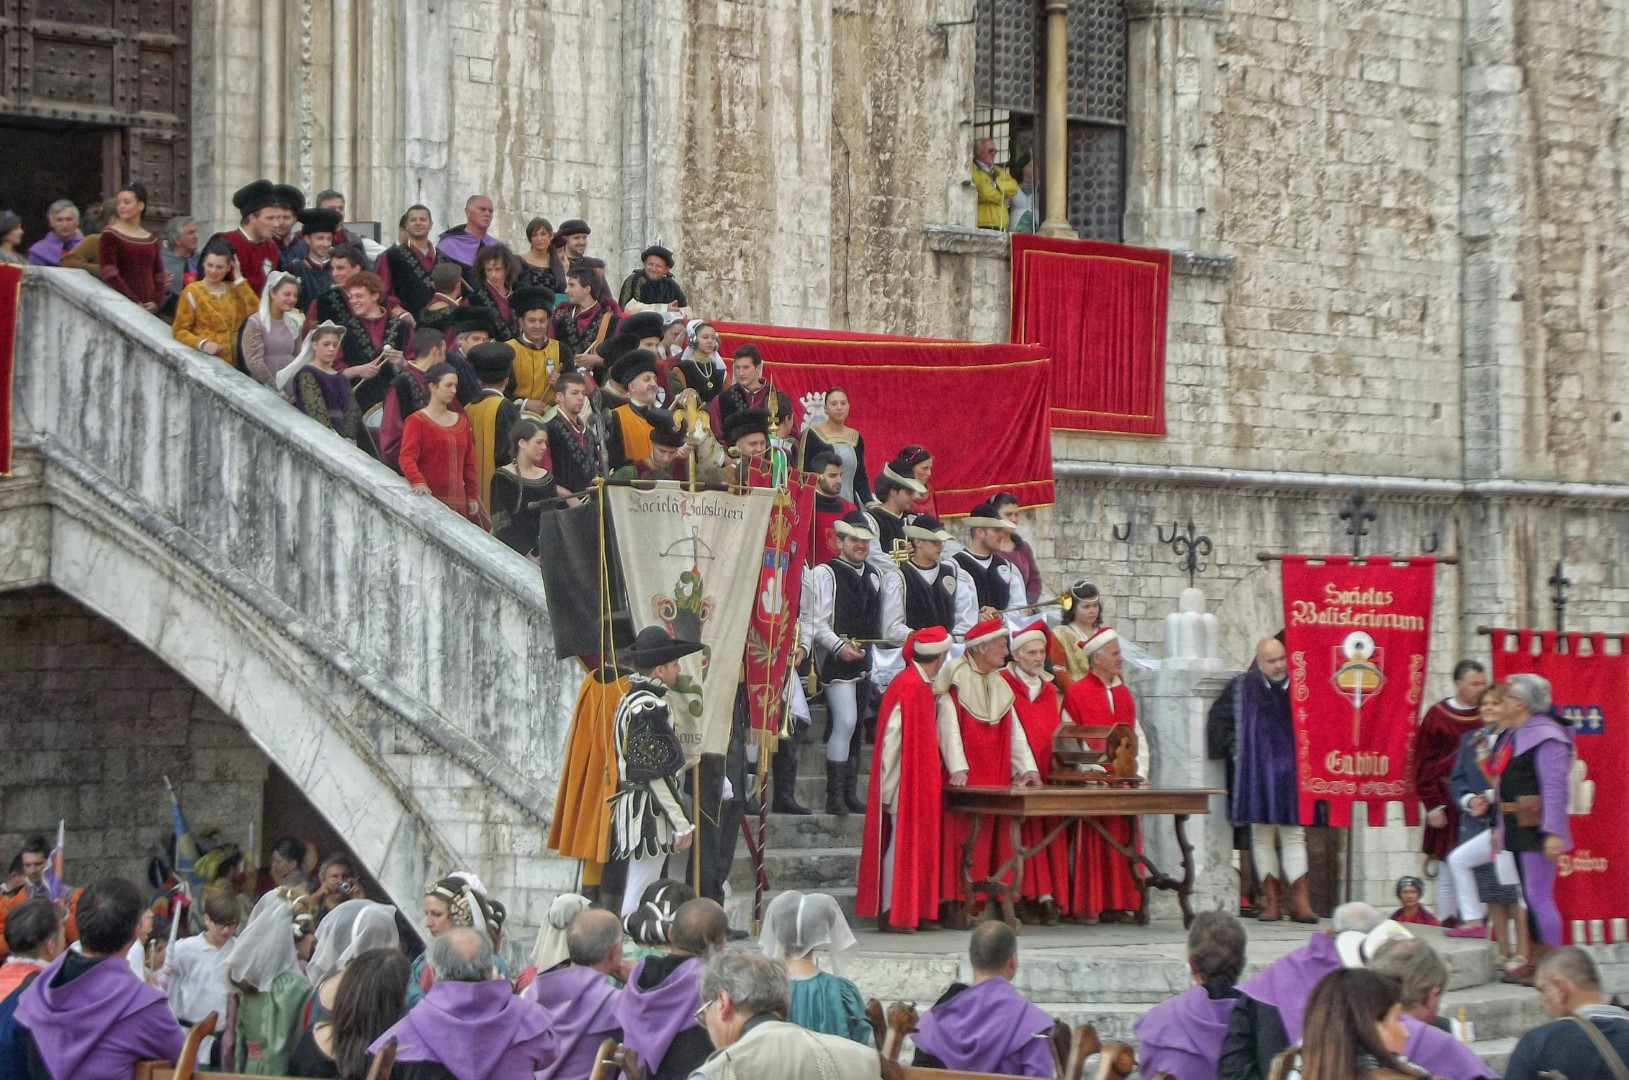 People in historical costume on steps with red banners